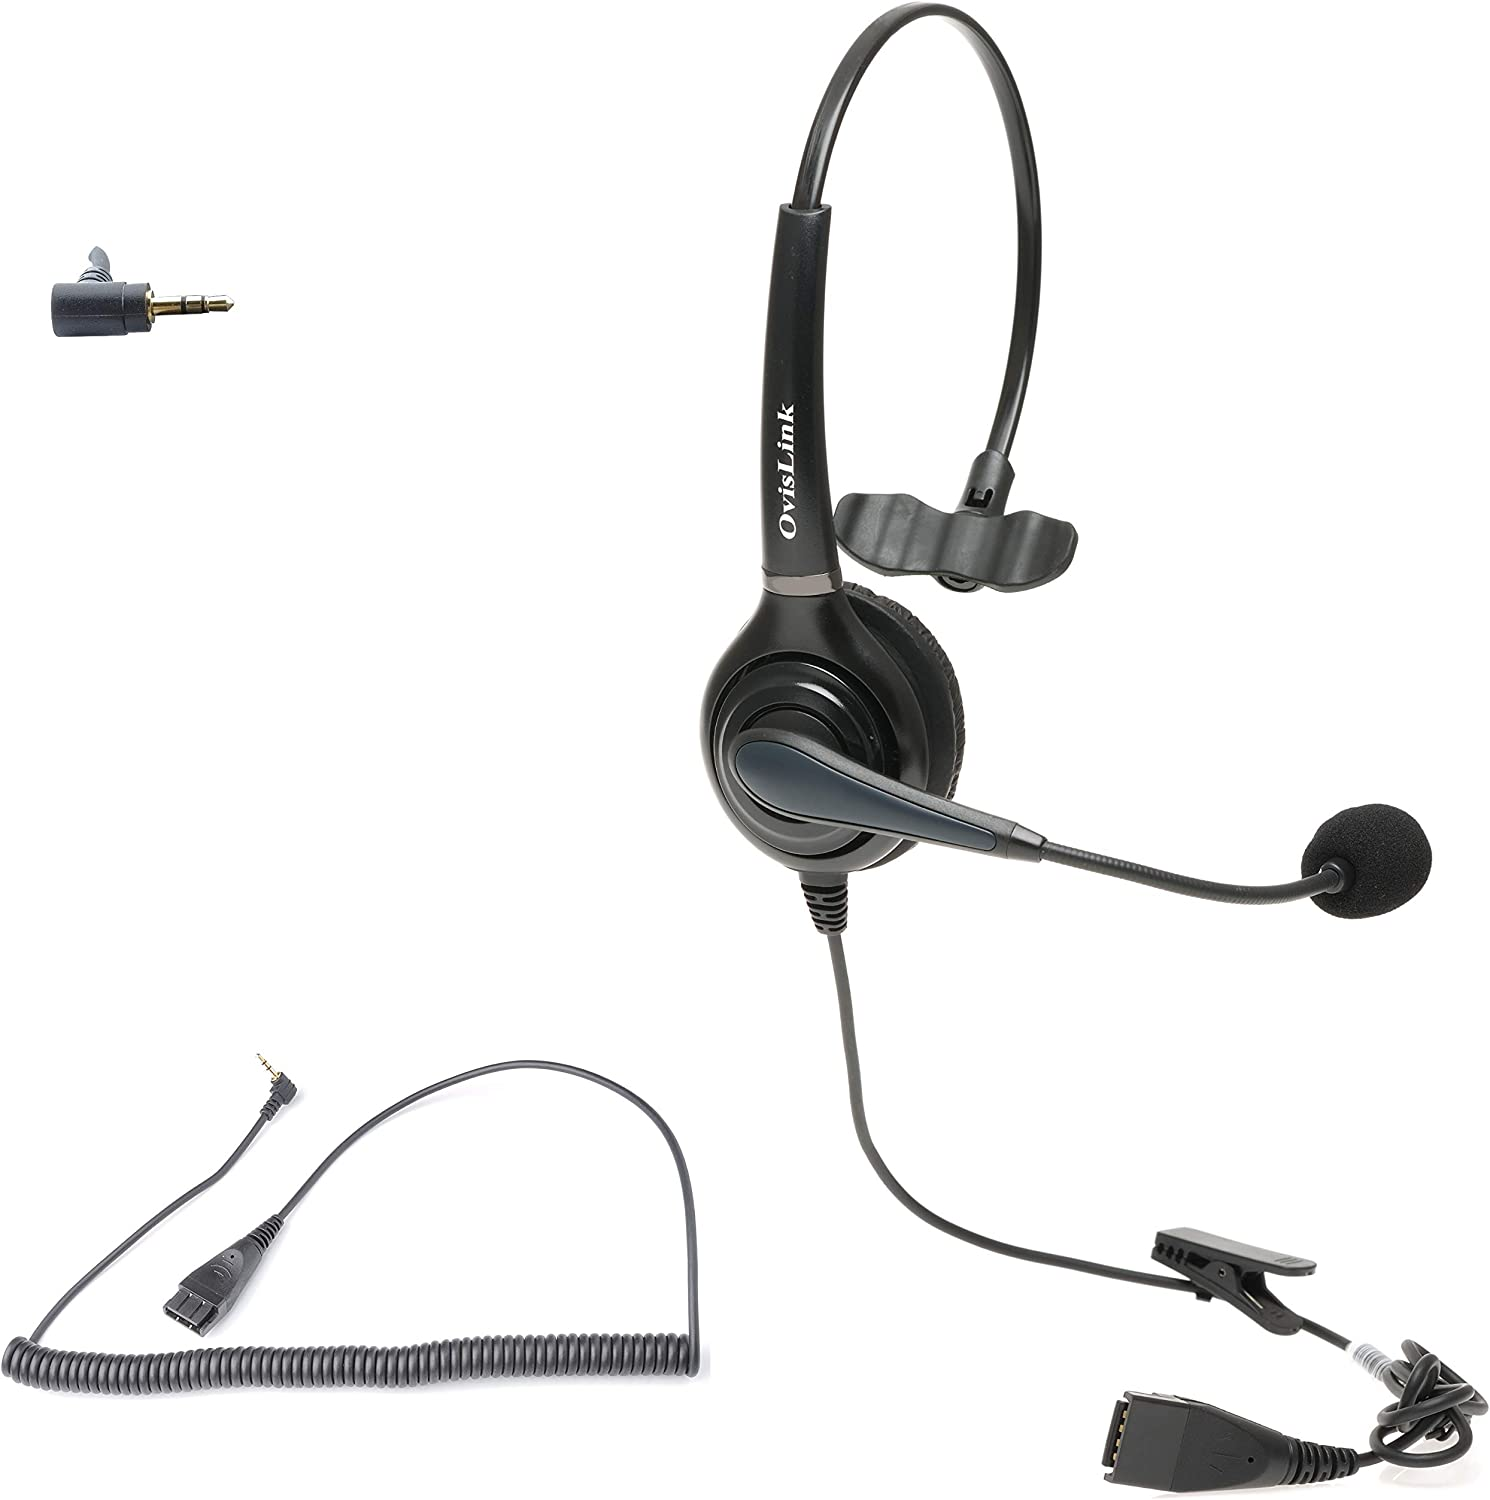 OvisLink Headset | Compatible with Cisco Small Business Phone SPA501G, 502G, 504G, SPA508G, SPA509G | Call Center Headset with Noise Canceling Microphone | HD Voice Quality | Rotatable Microphone